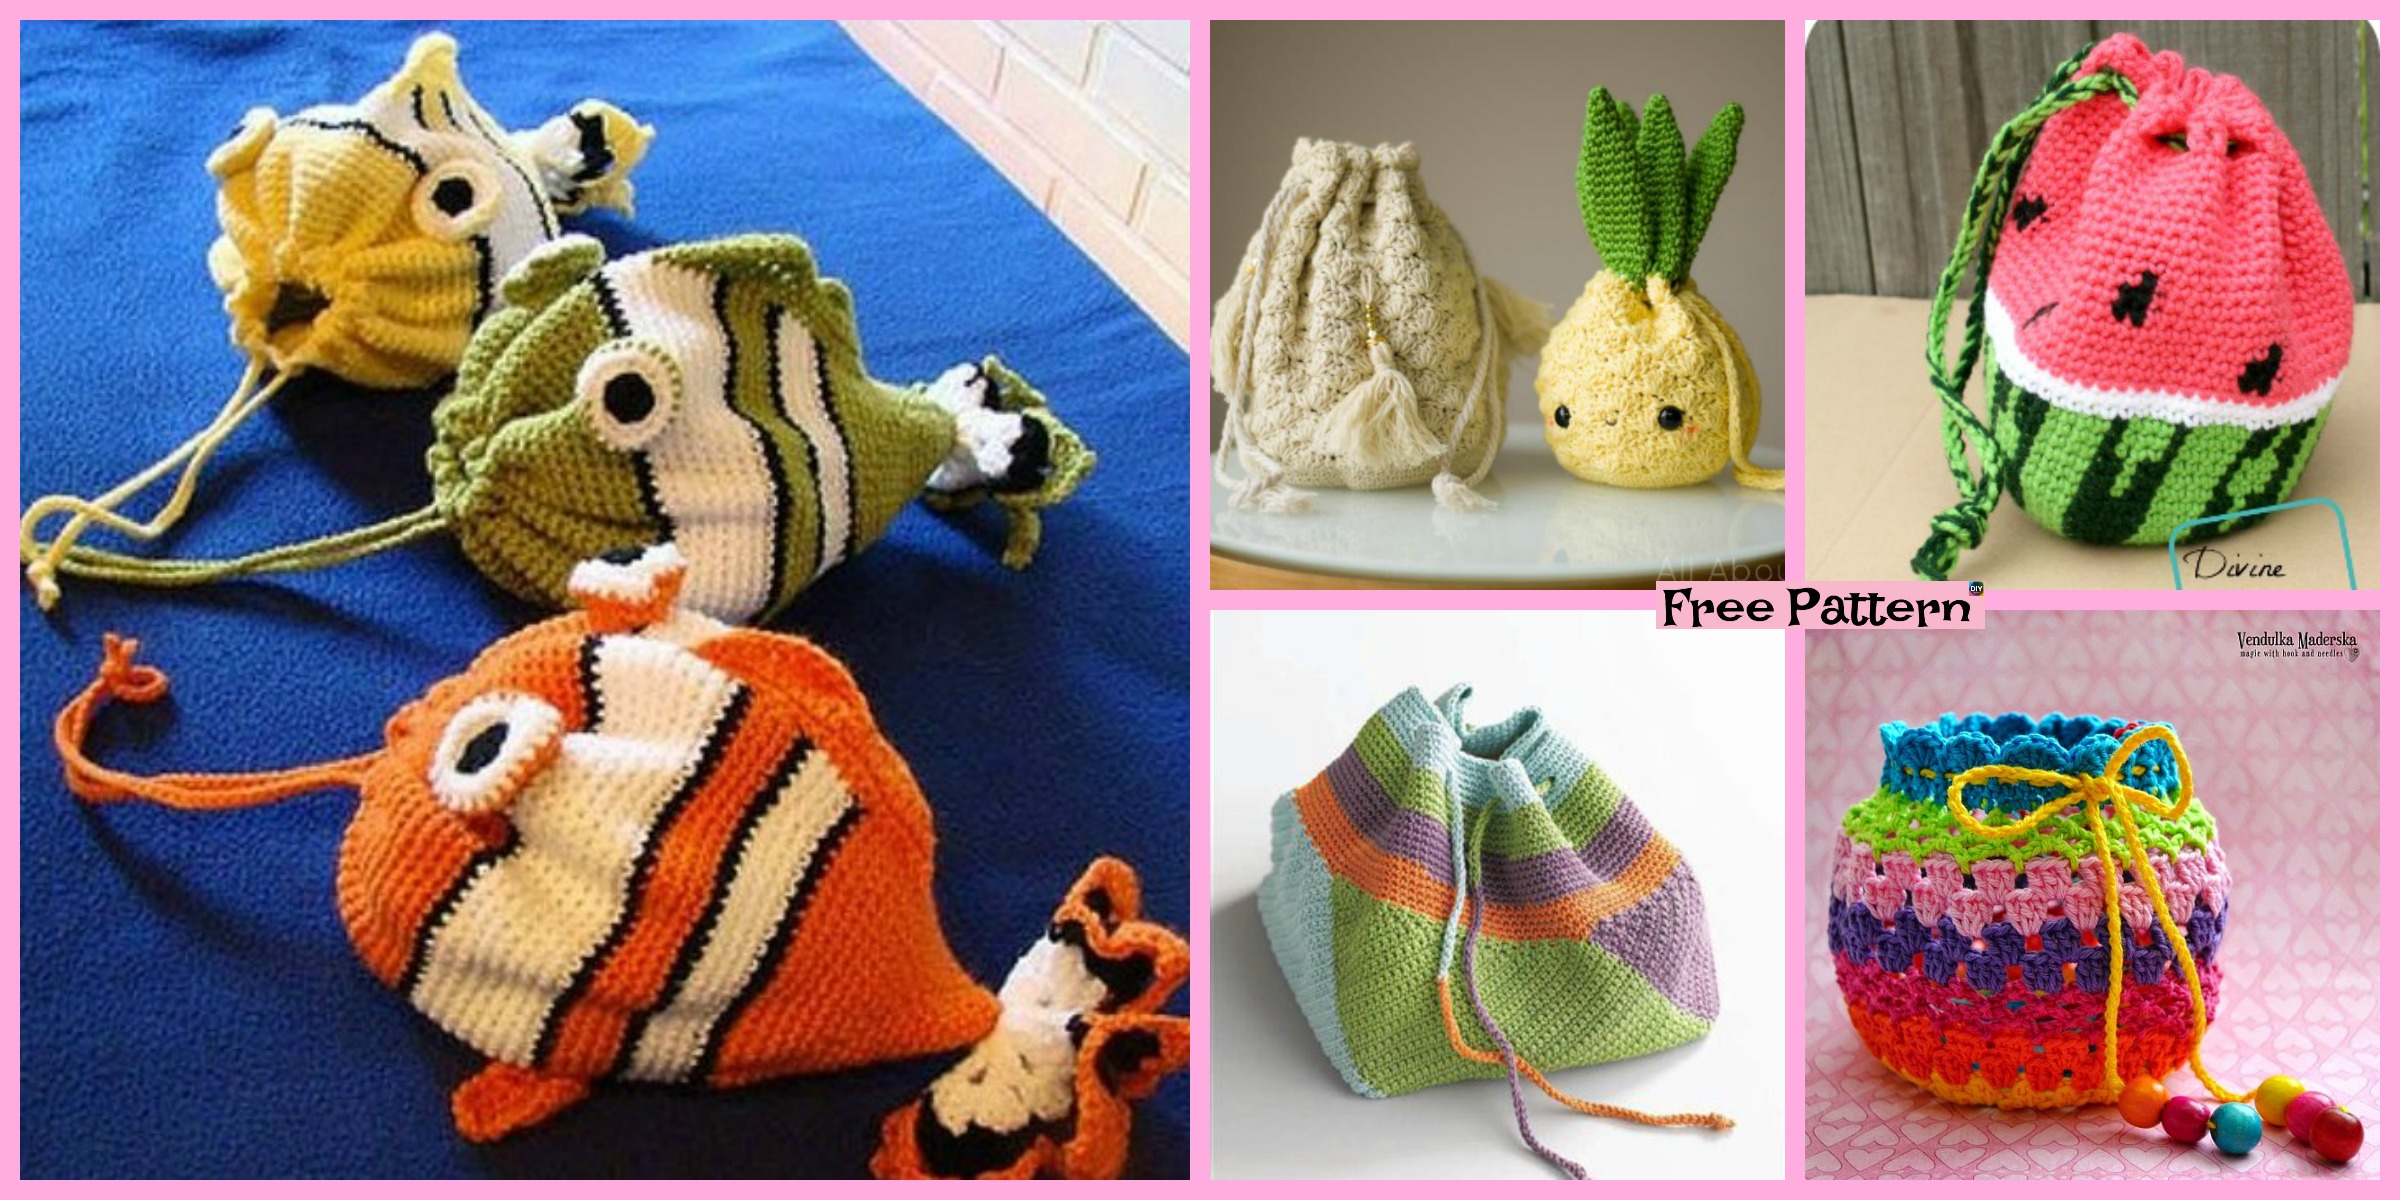 diy4ever-15 Crochet Drawstring Bag Free Patterns